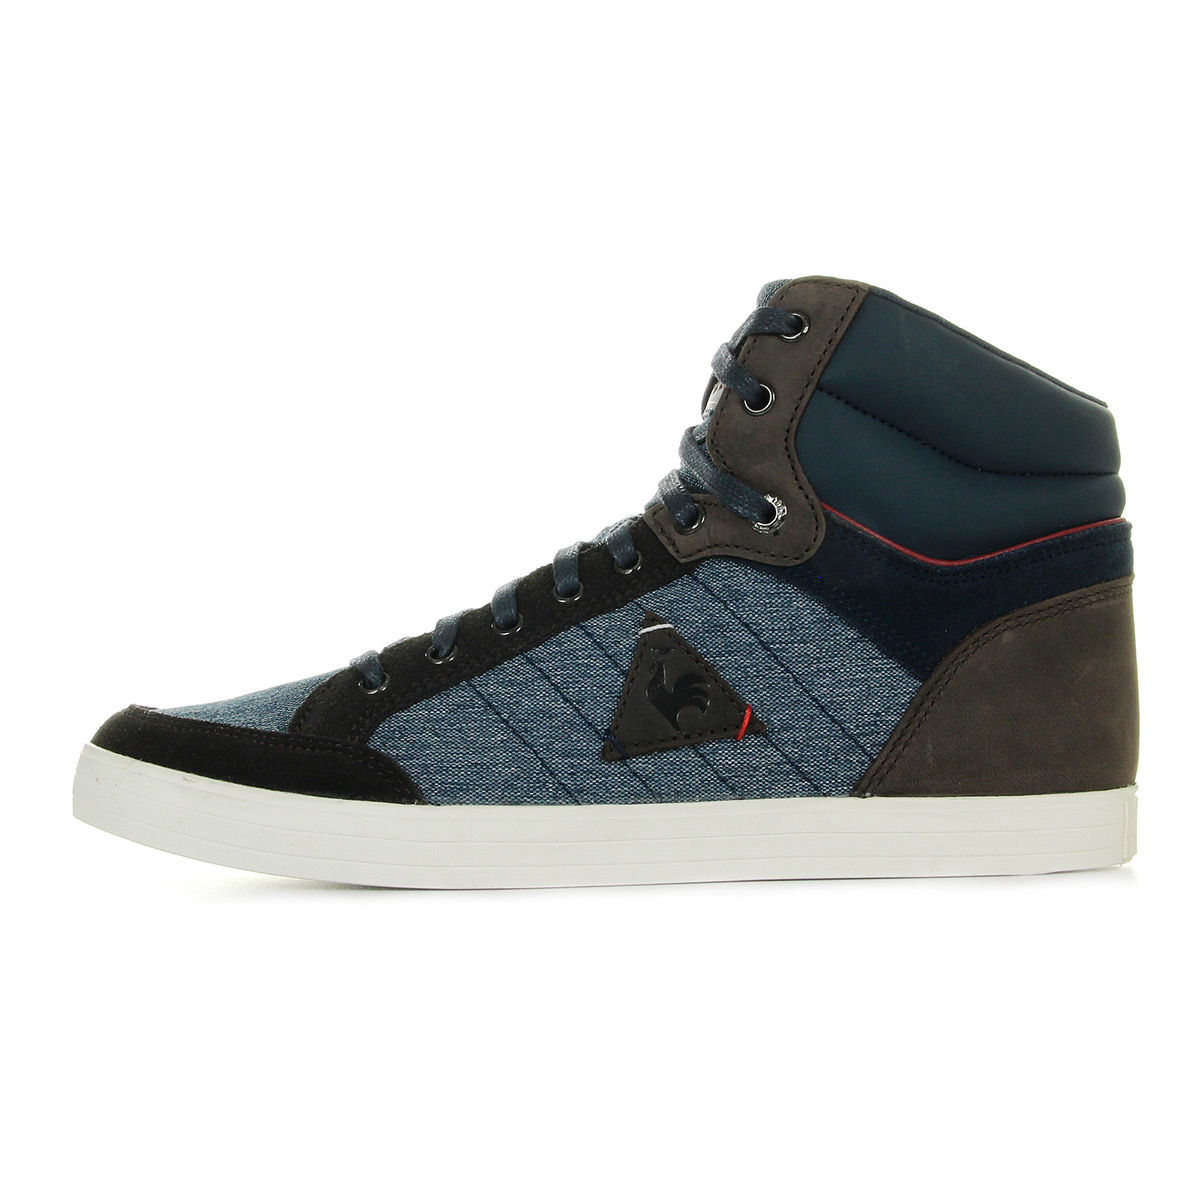 Le Coq Sportif Portalet Mid Craft 2 Tones 1720258, Baskets mode homme